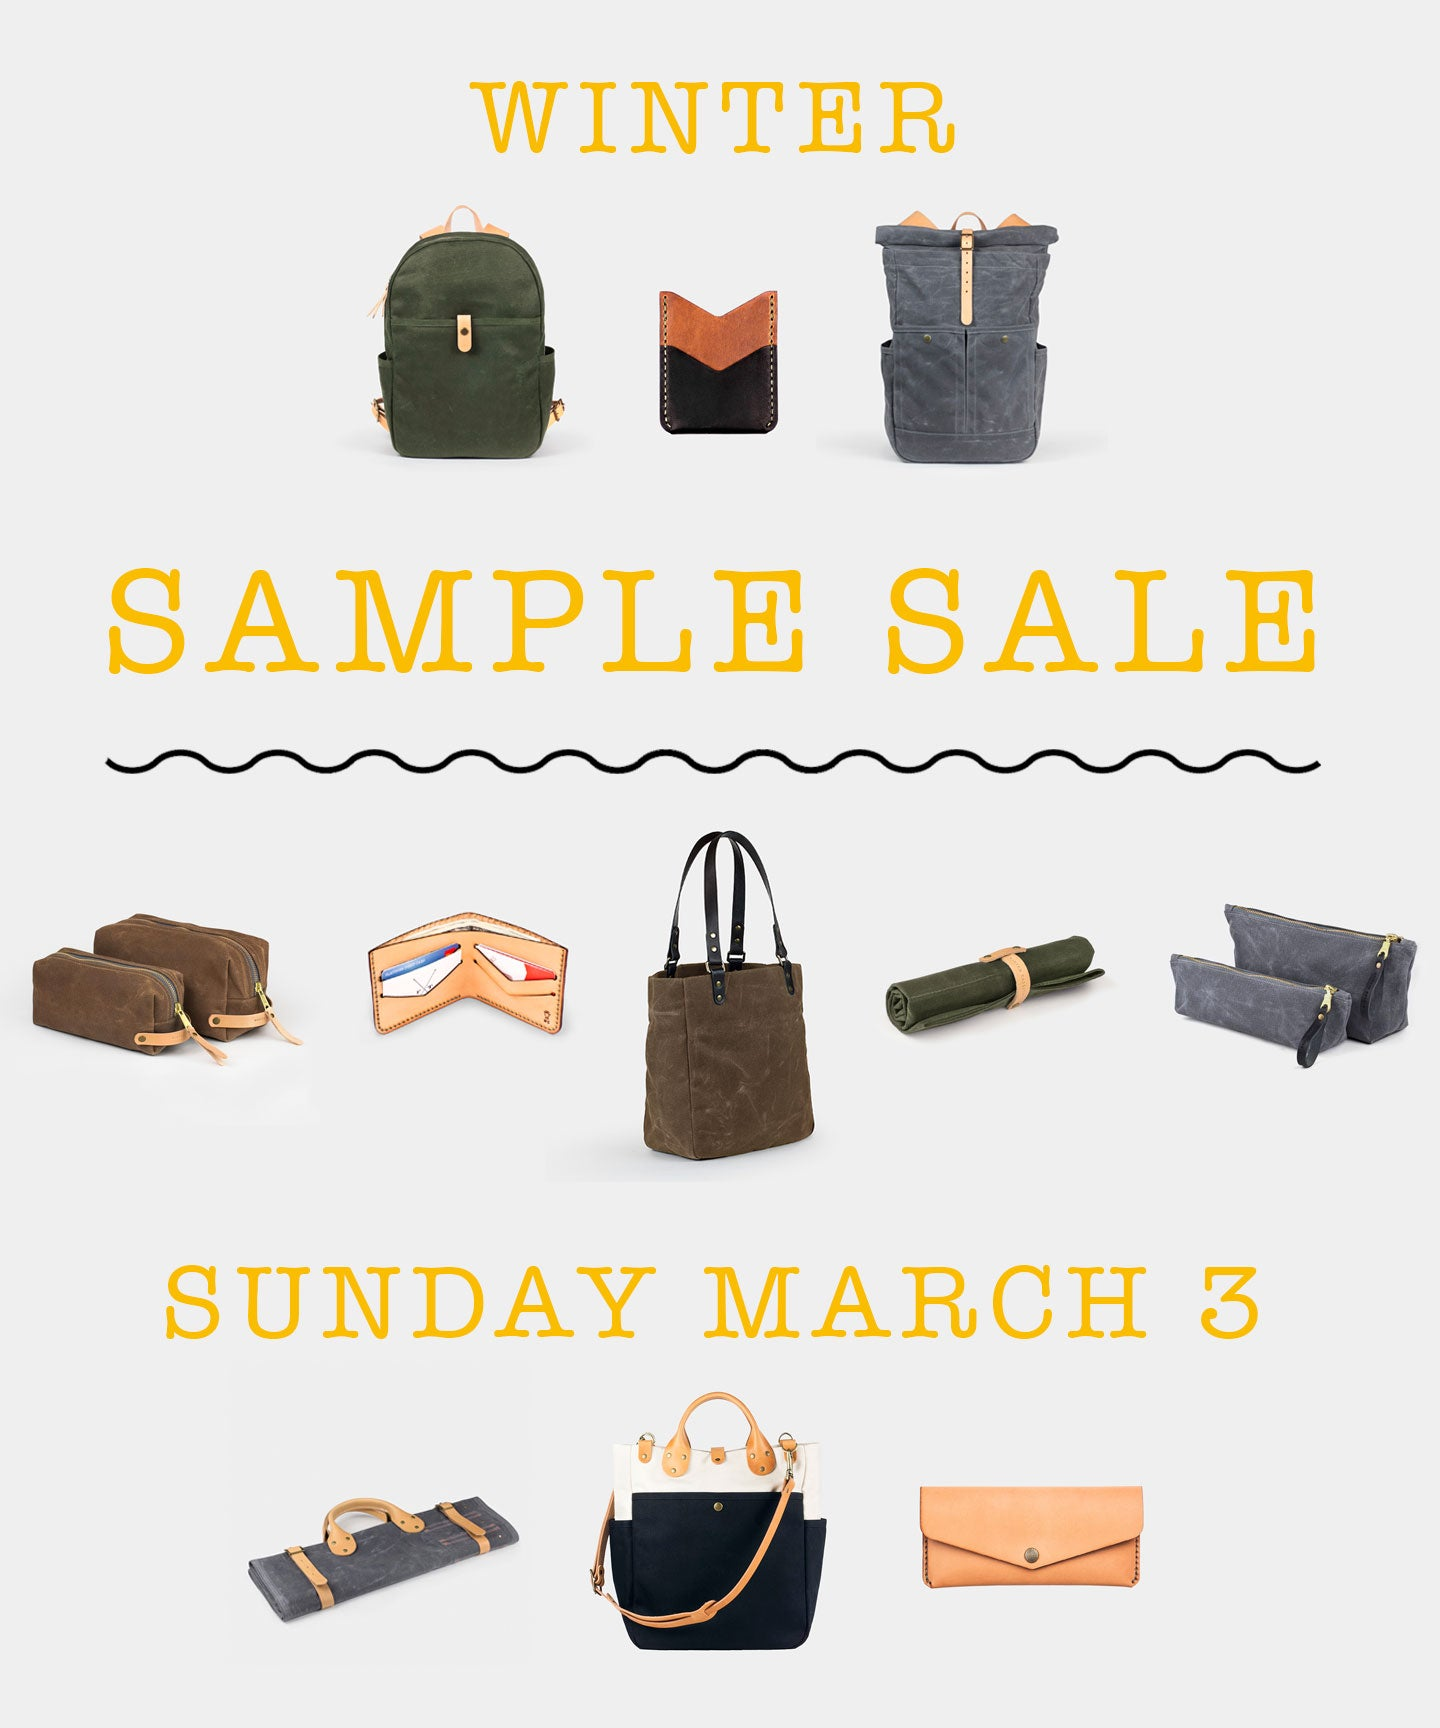 WINTER SAMPLE SALE / canvas and leather goods made by Winter Session in Denver CO